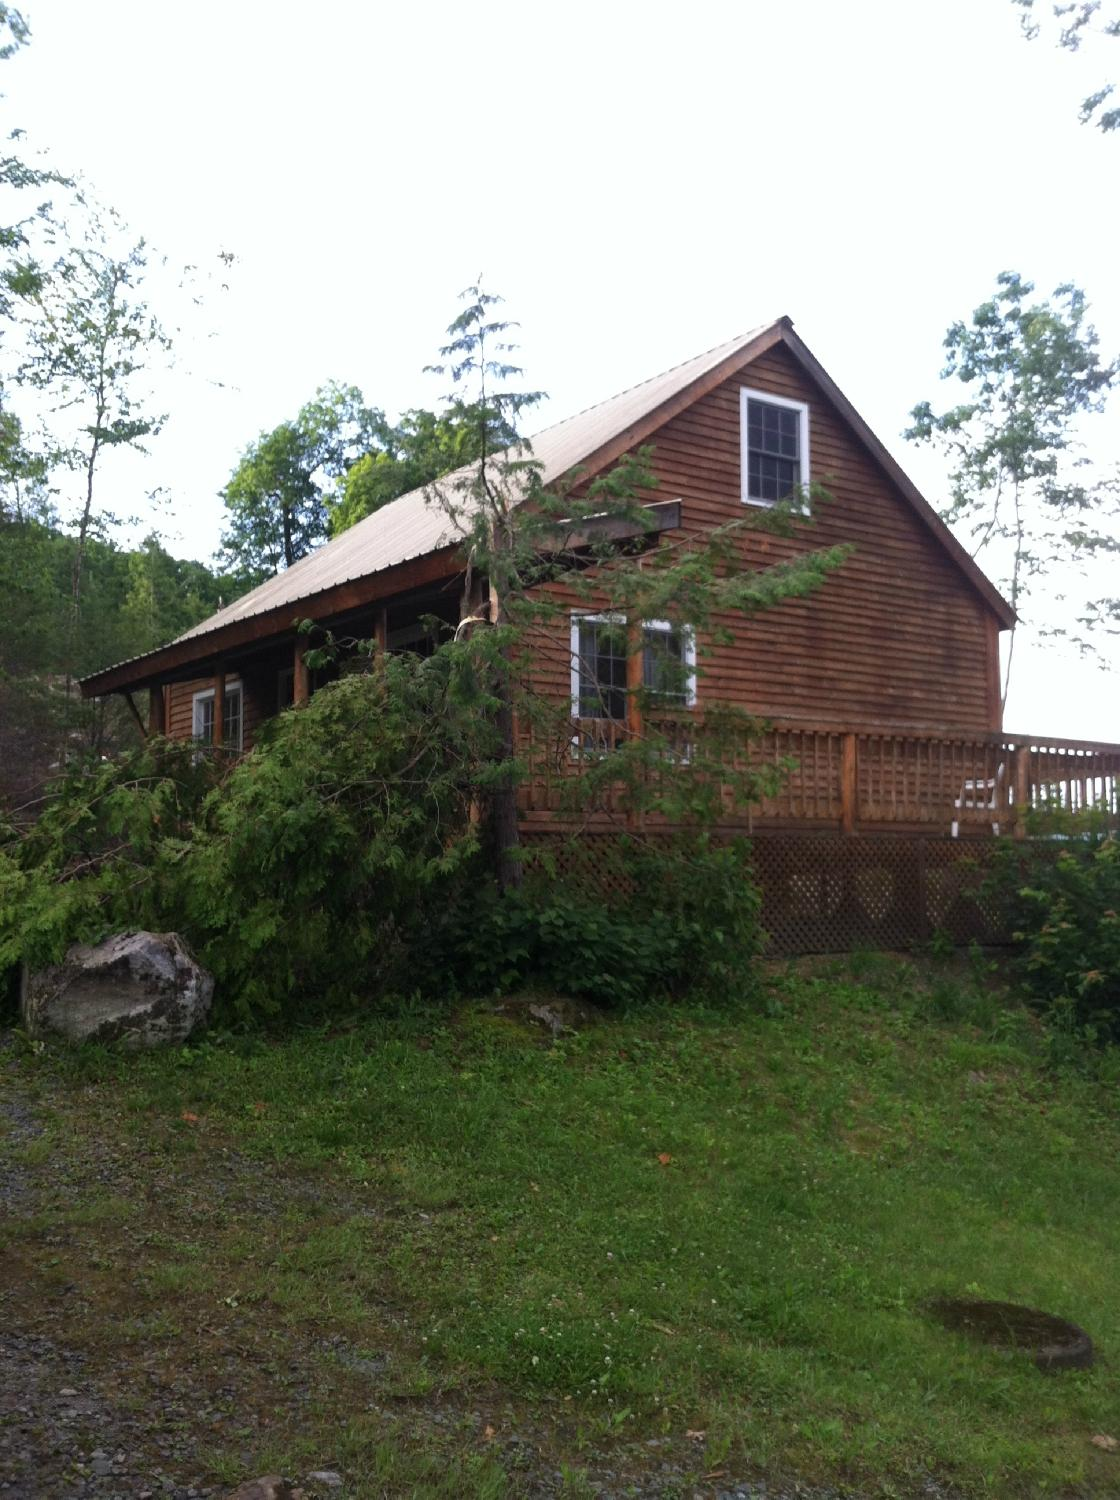 Harvey's Lake Cabins and Campground